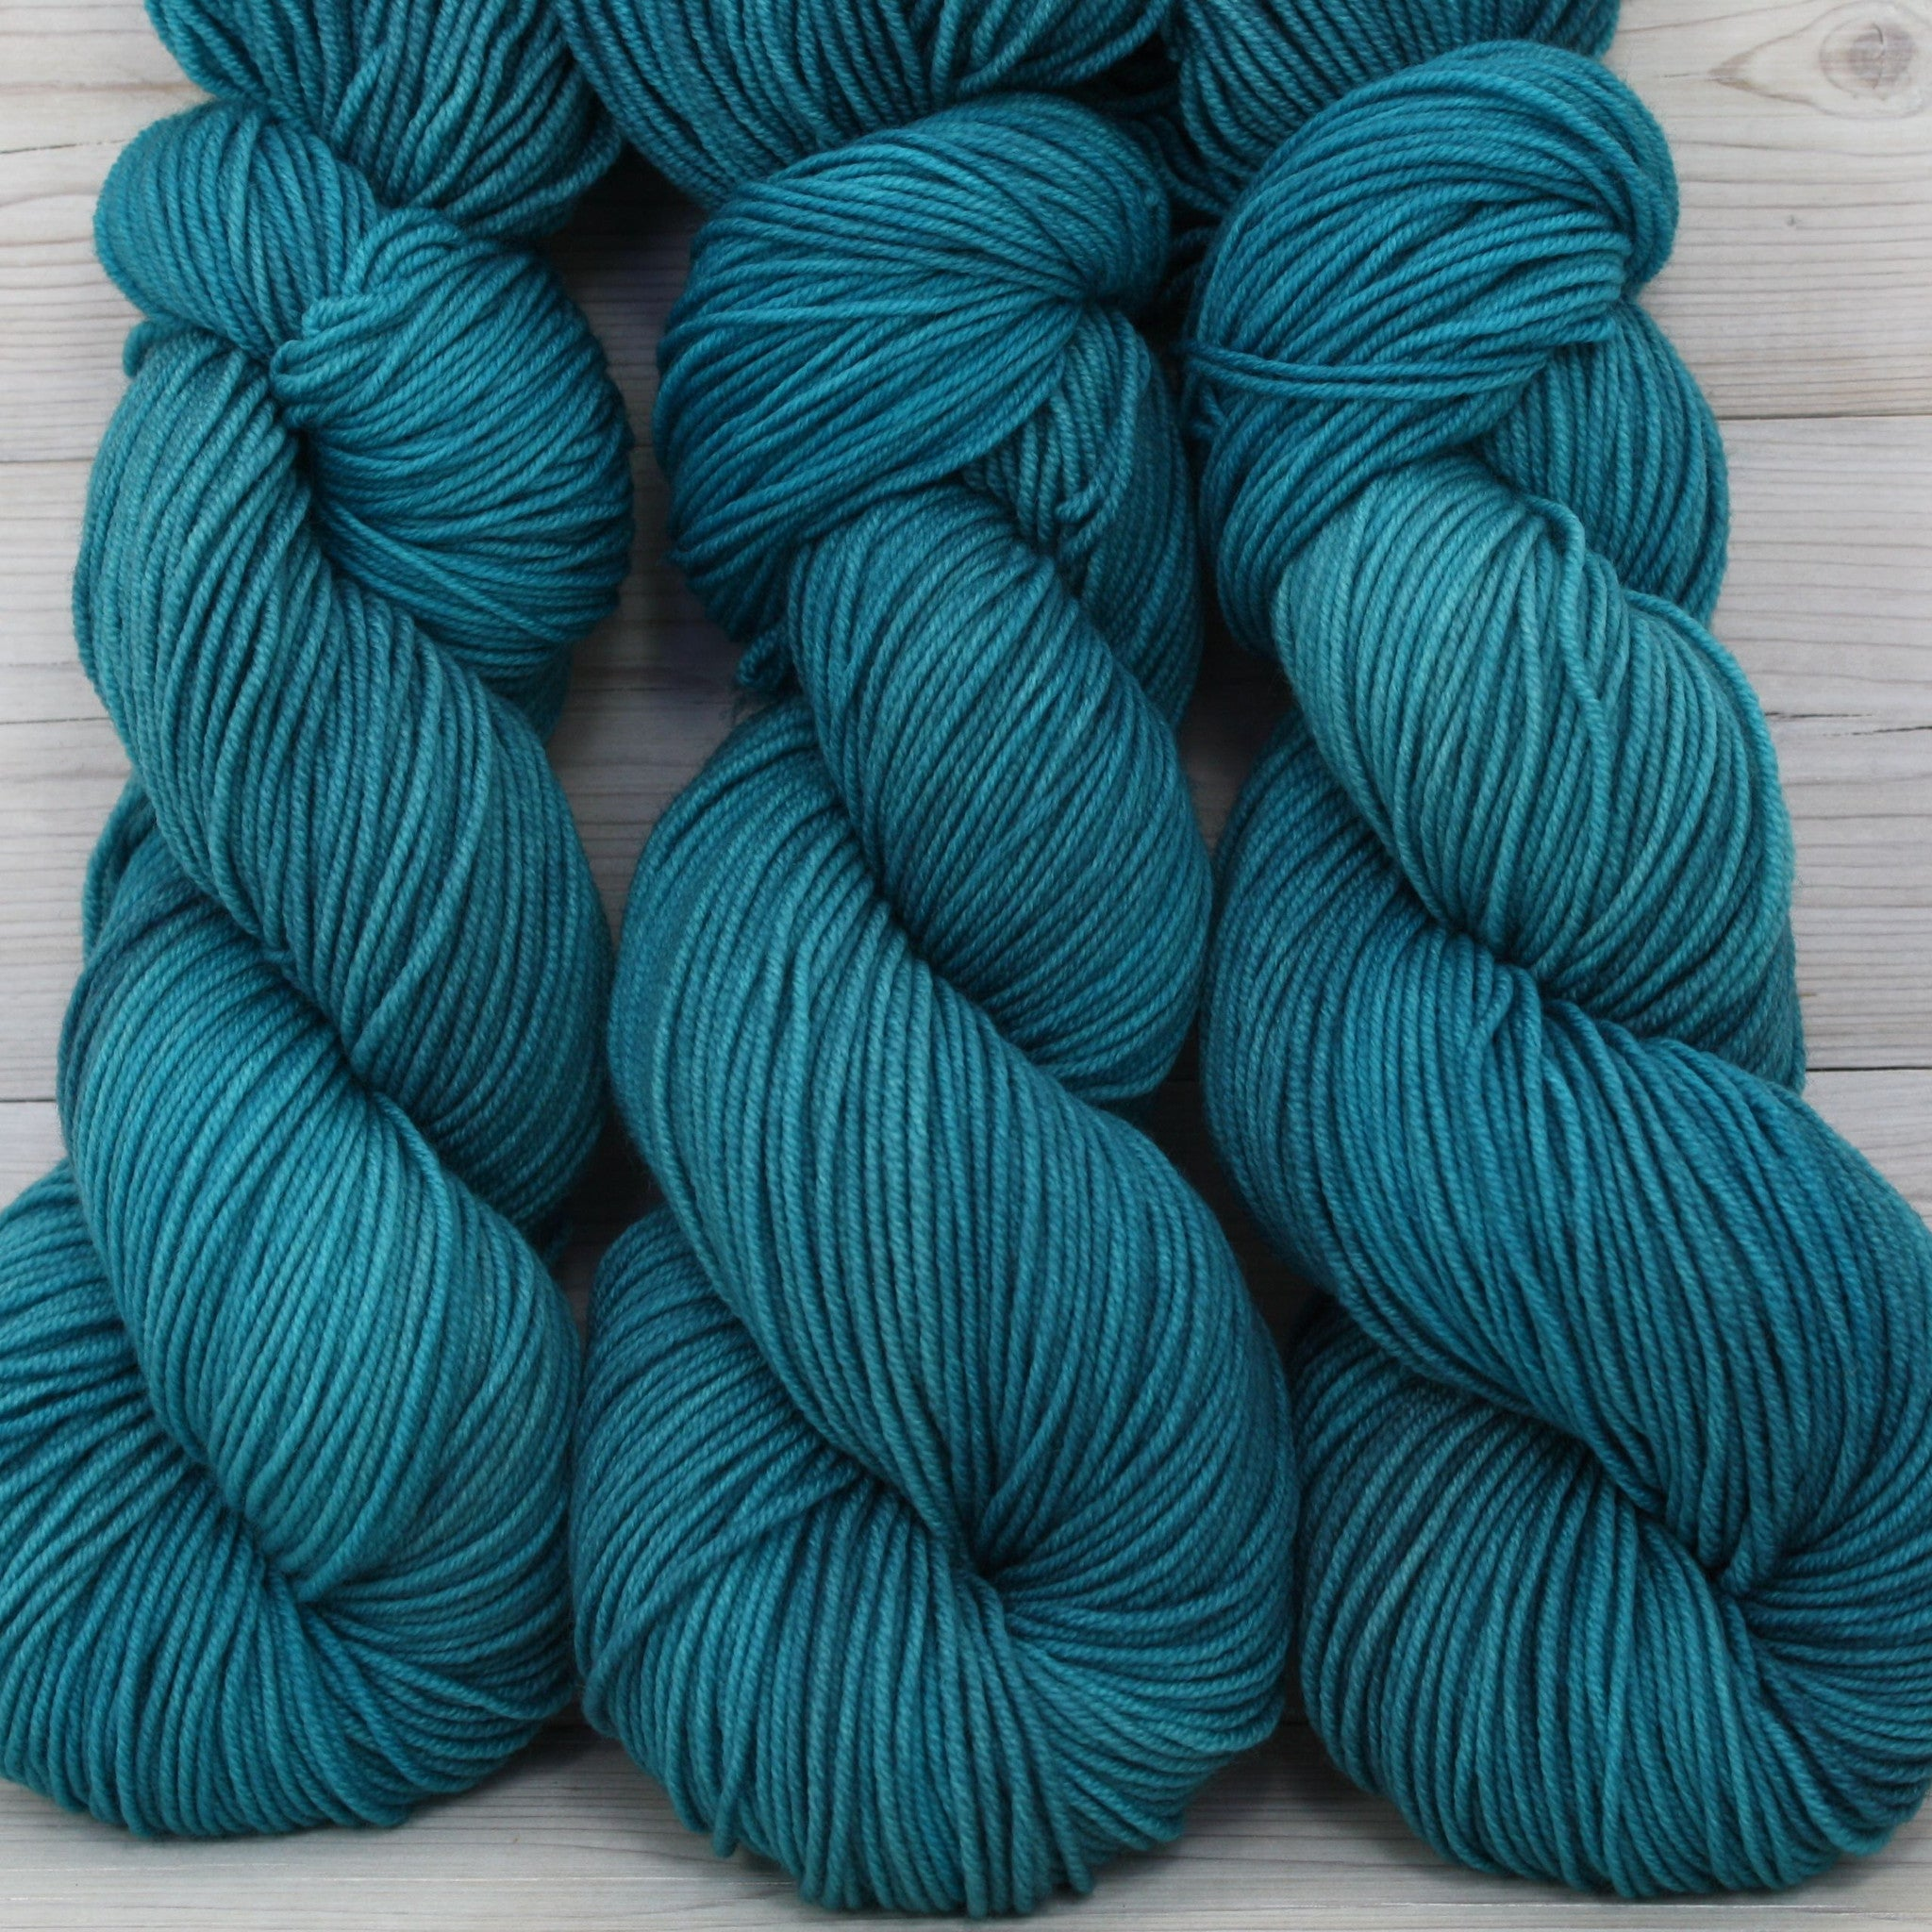 Aspen Sport Yarn | Colorway: Fjord